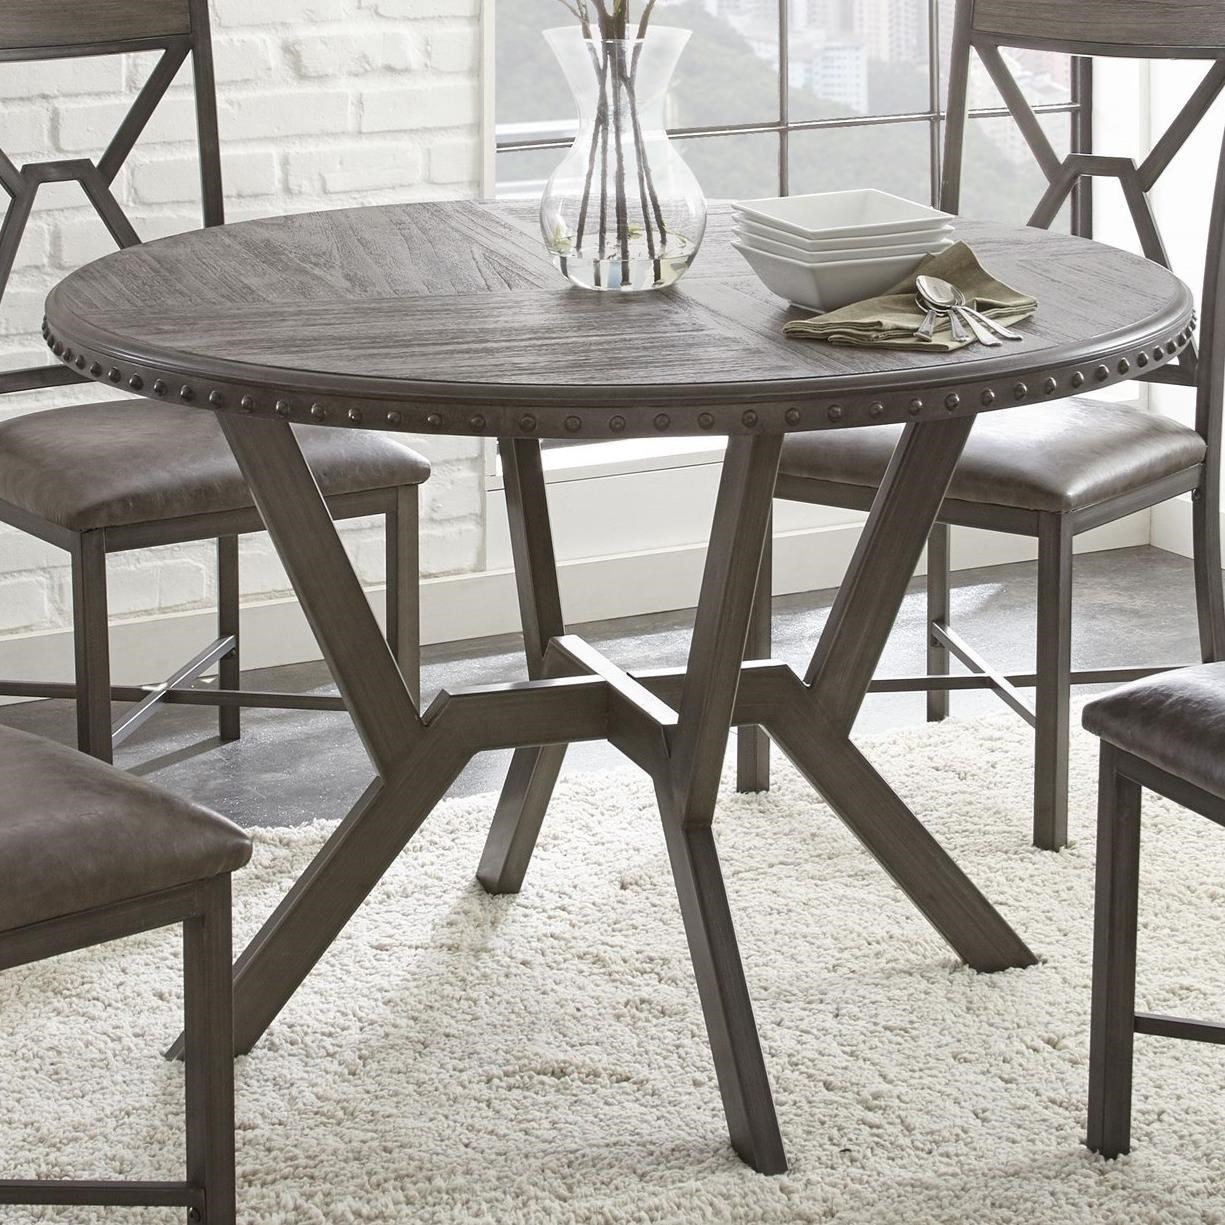 Lovely Steve Silver Alamo Round Dining Table With Metal Base